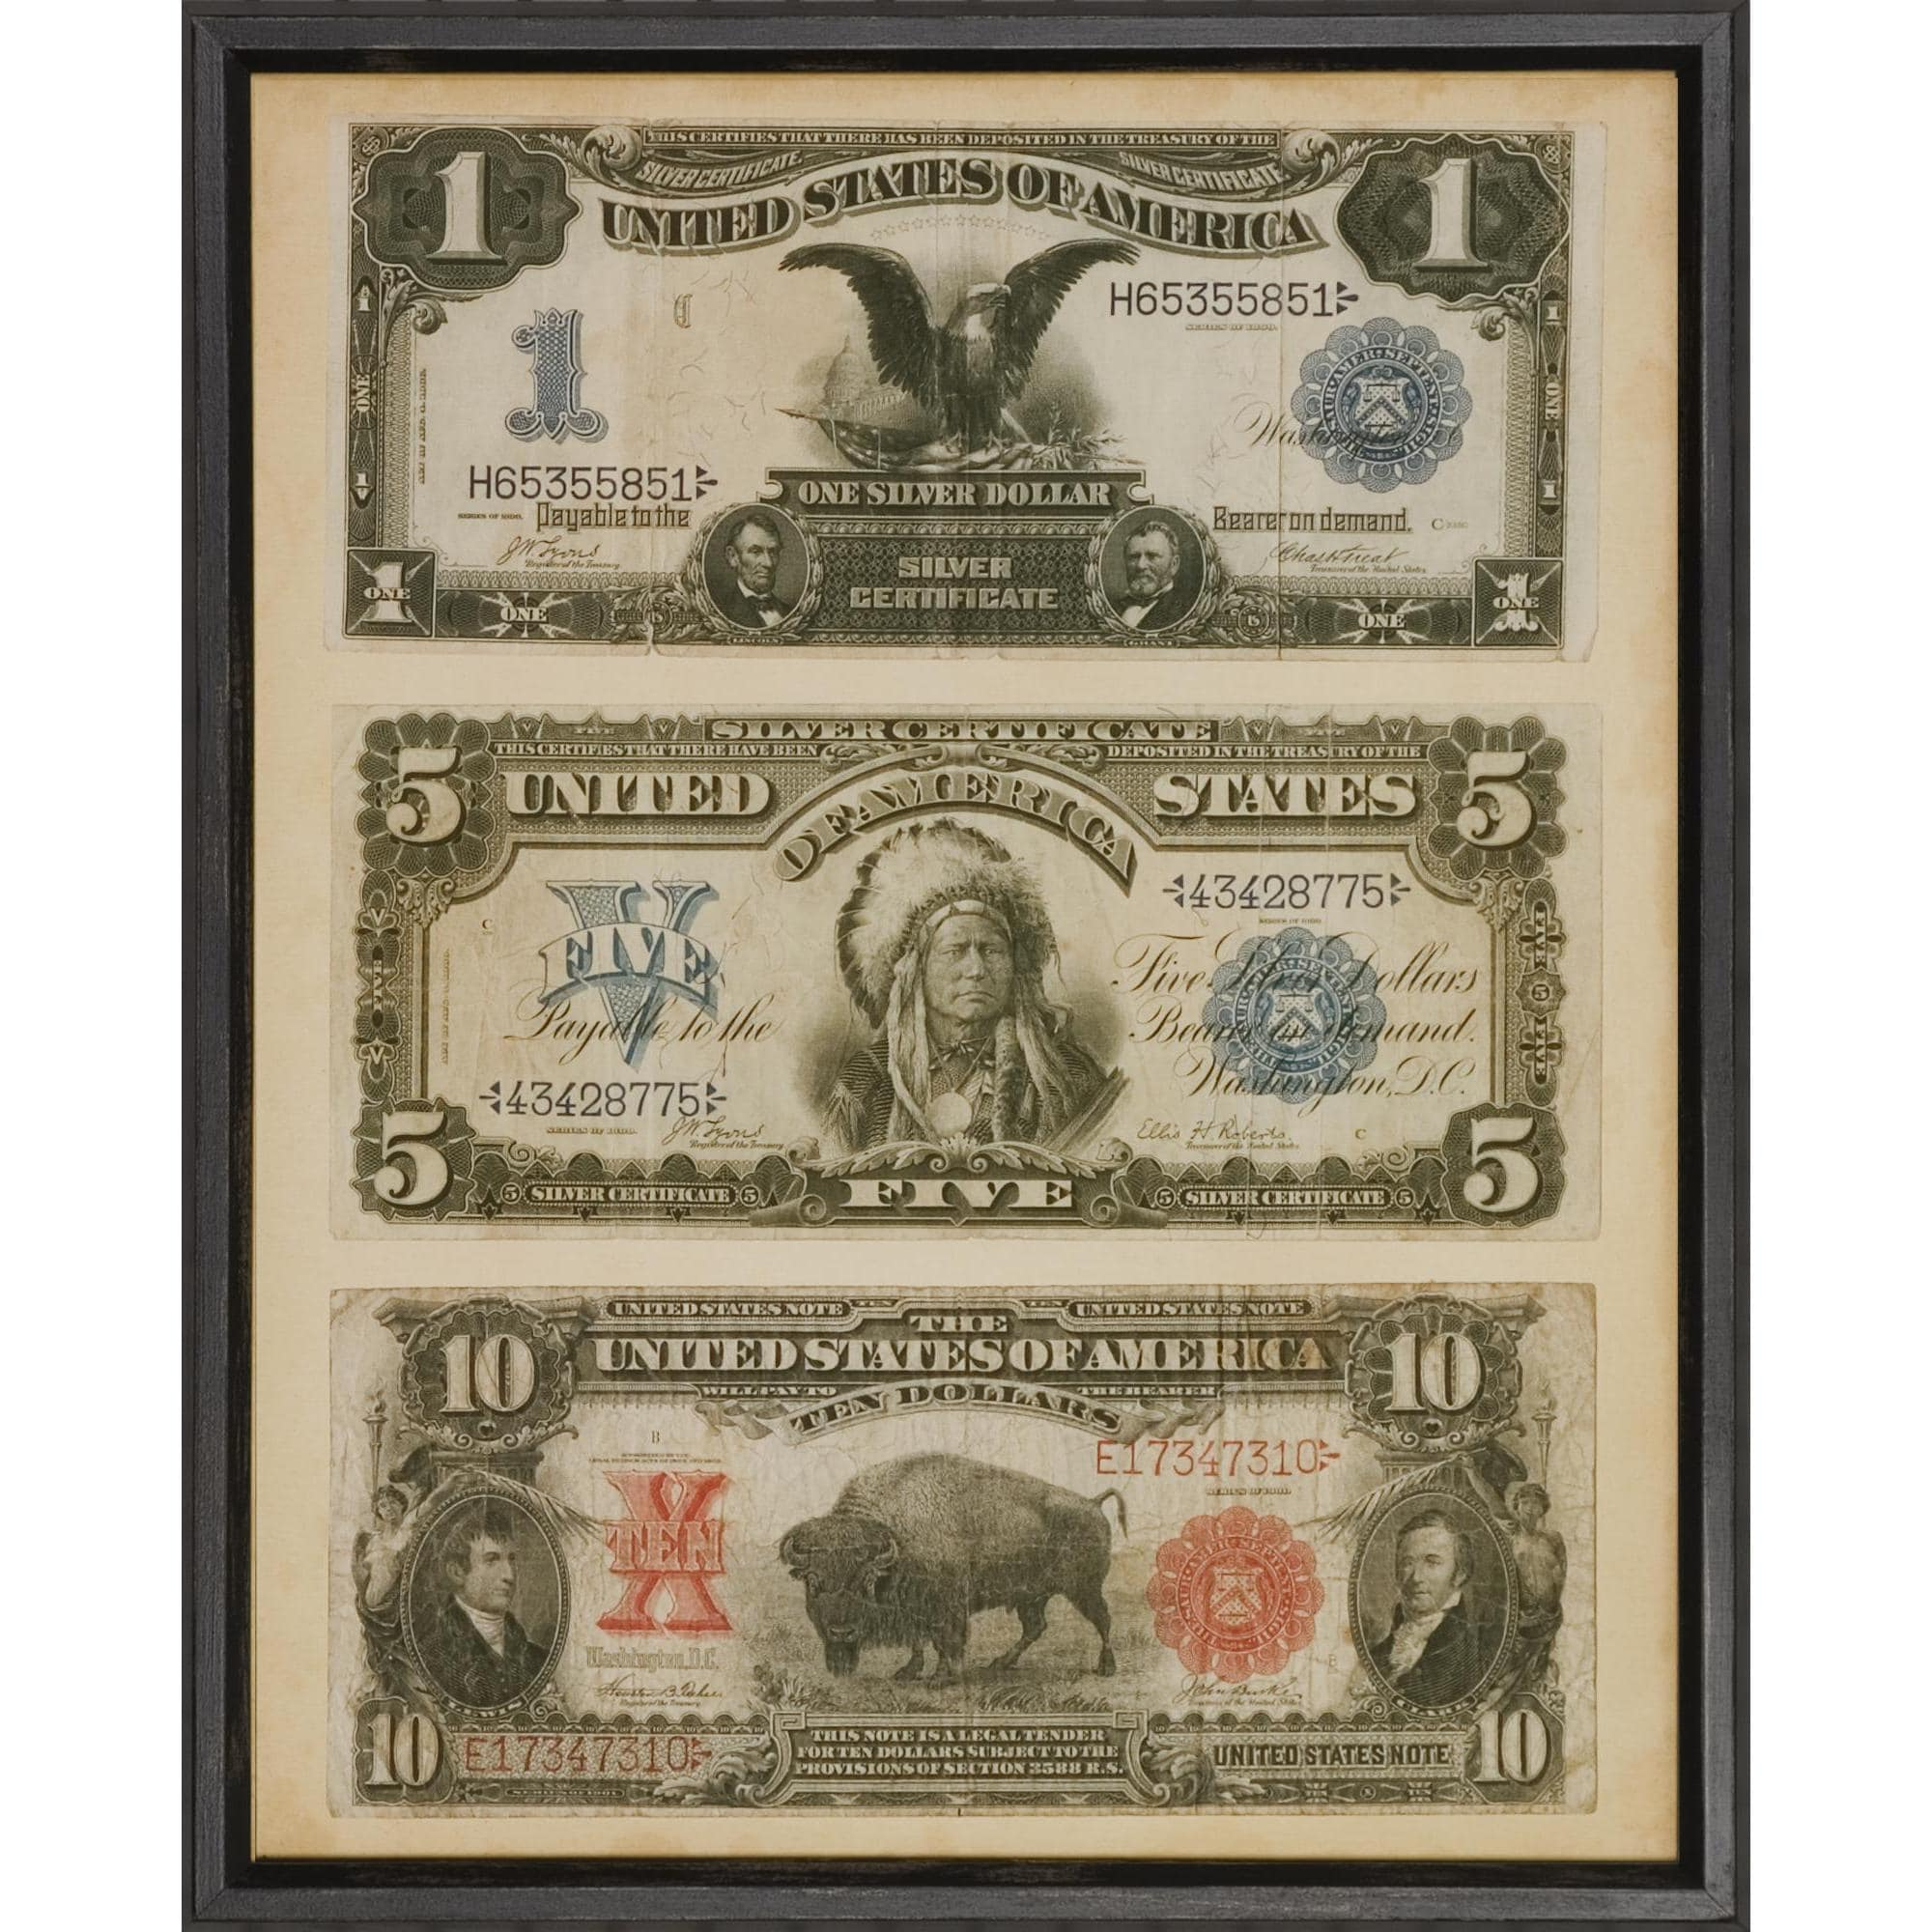 Art Virtuoso Antique American Currency Framed Art Print